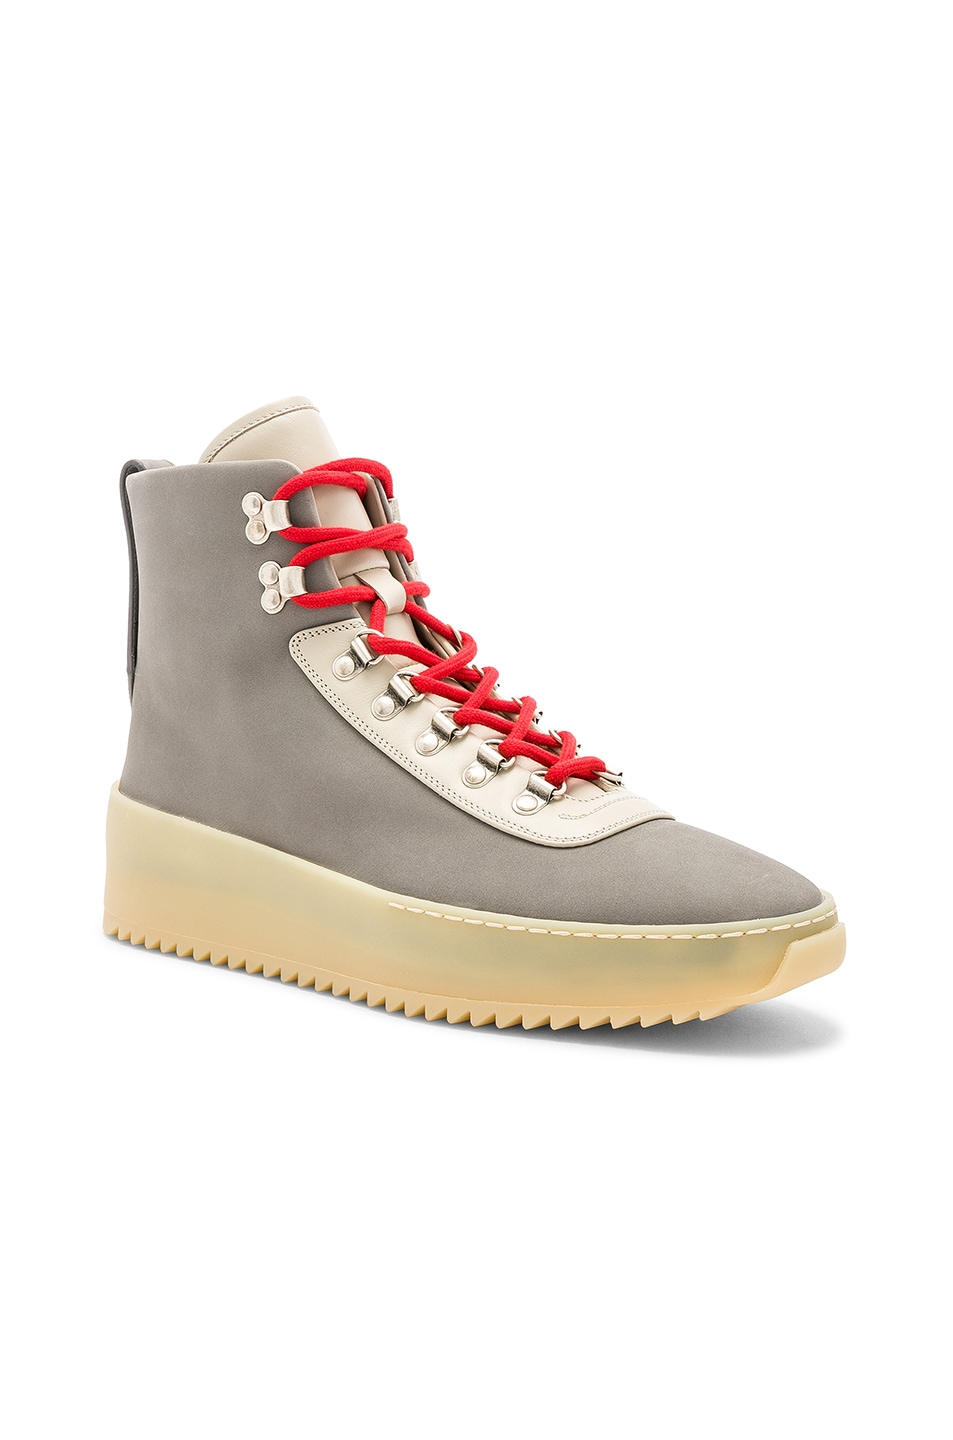 Image 1 of Fear of God Nubuck Leather Hiking Sneakers in Grey